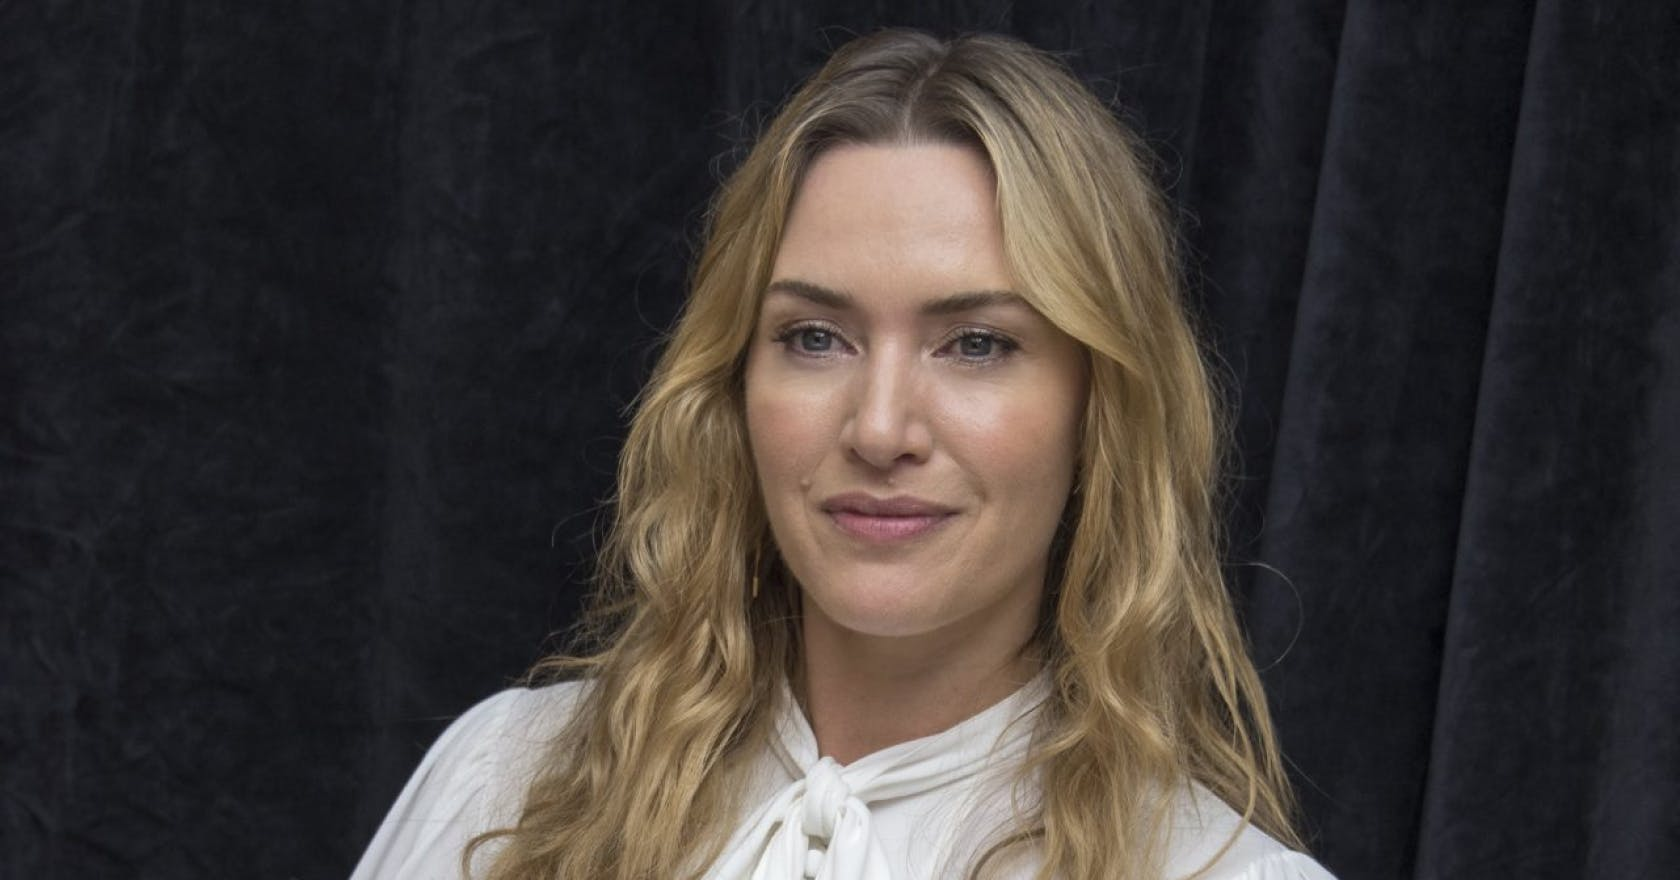 Kate Winslet just revealed she's a big Schitt's Creek fan, and we're obsessed